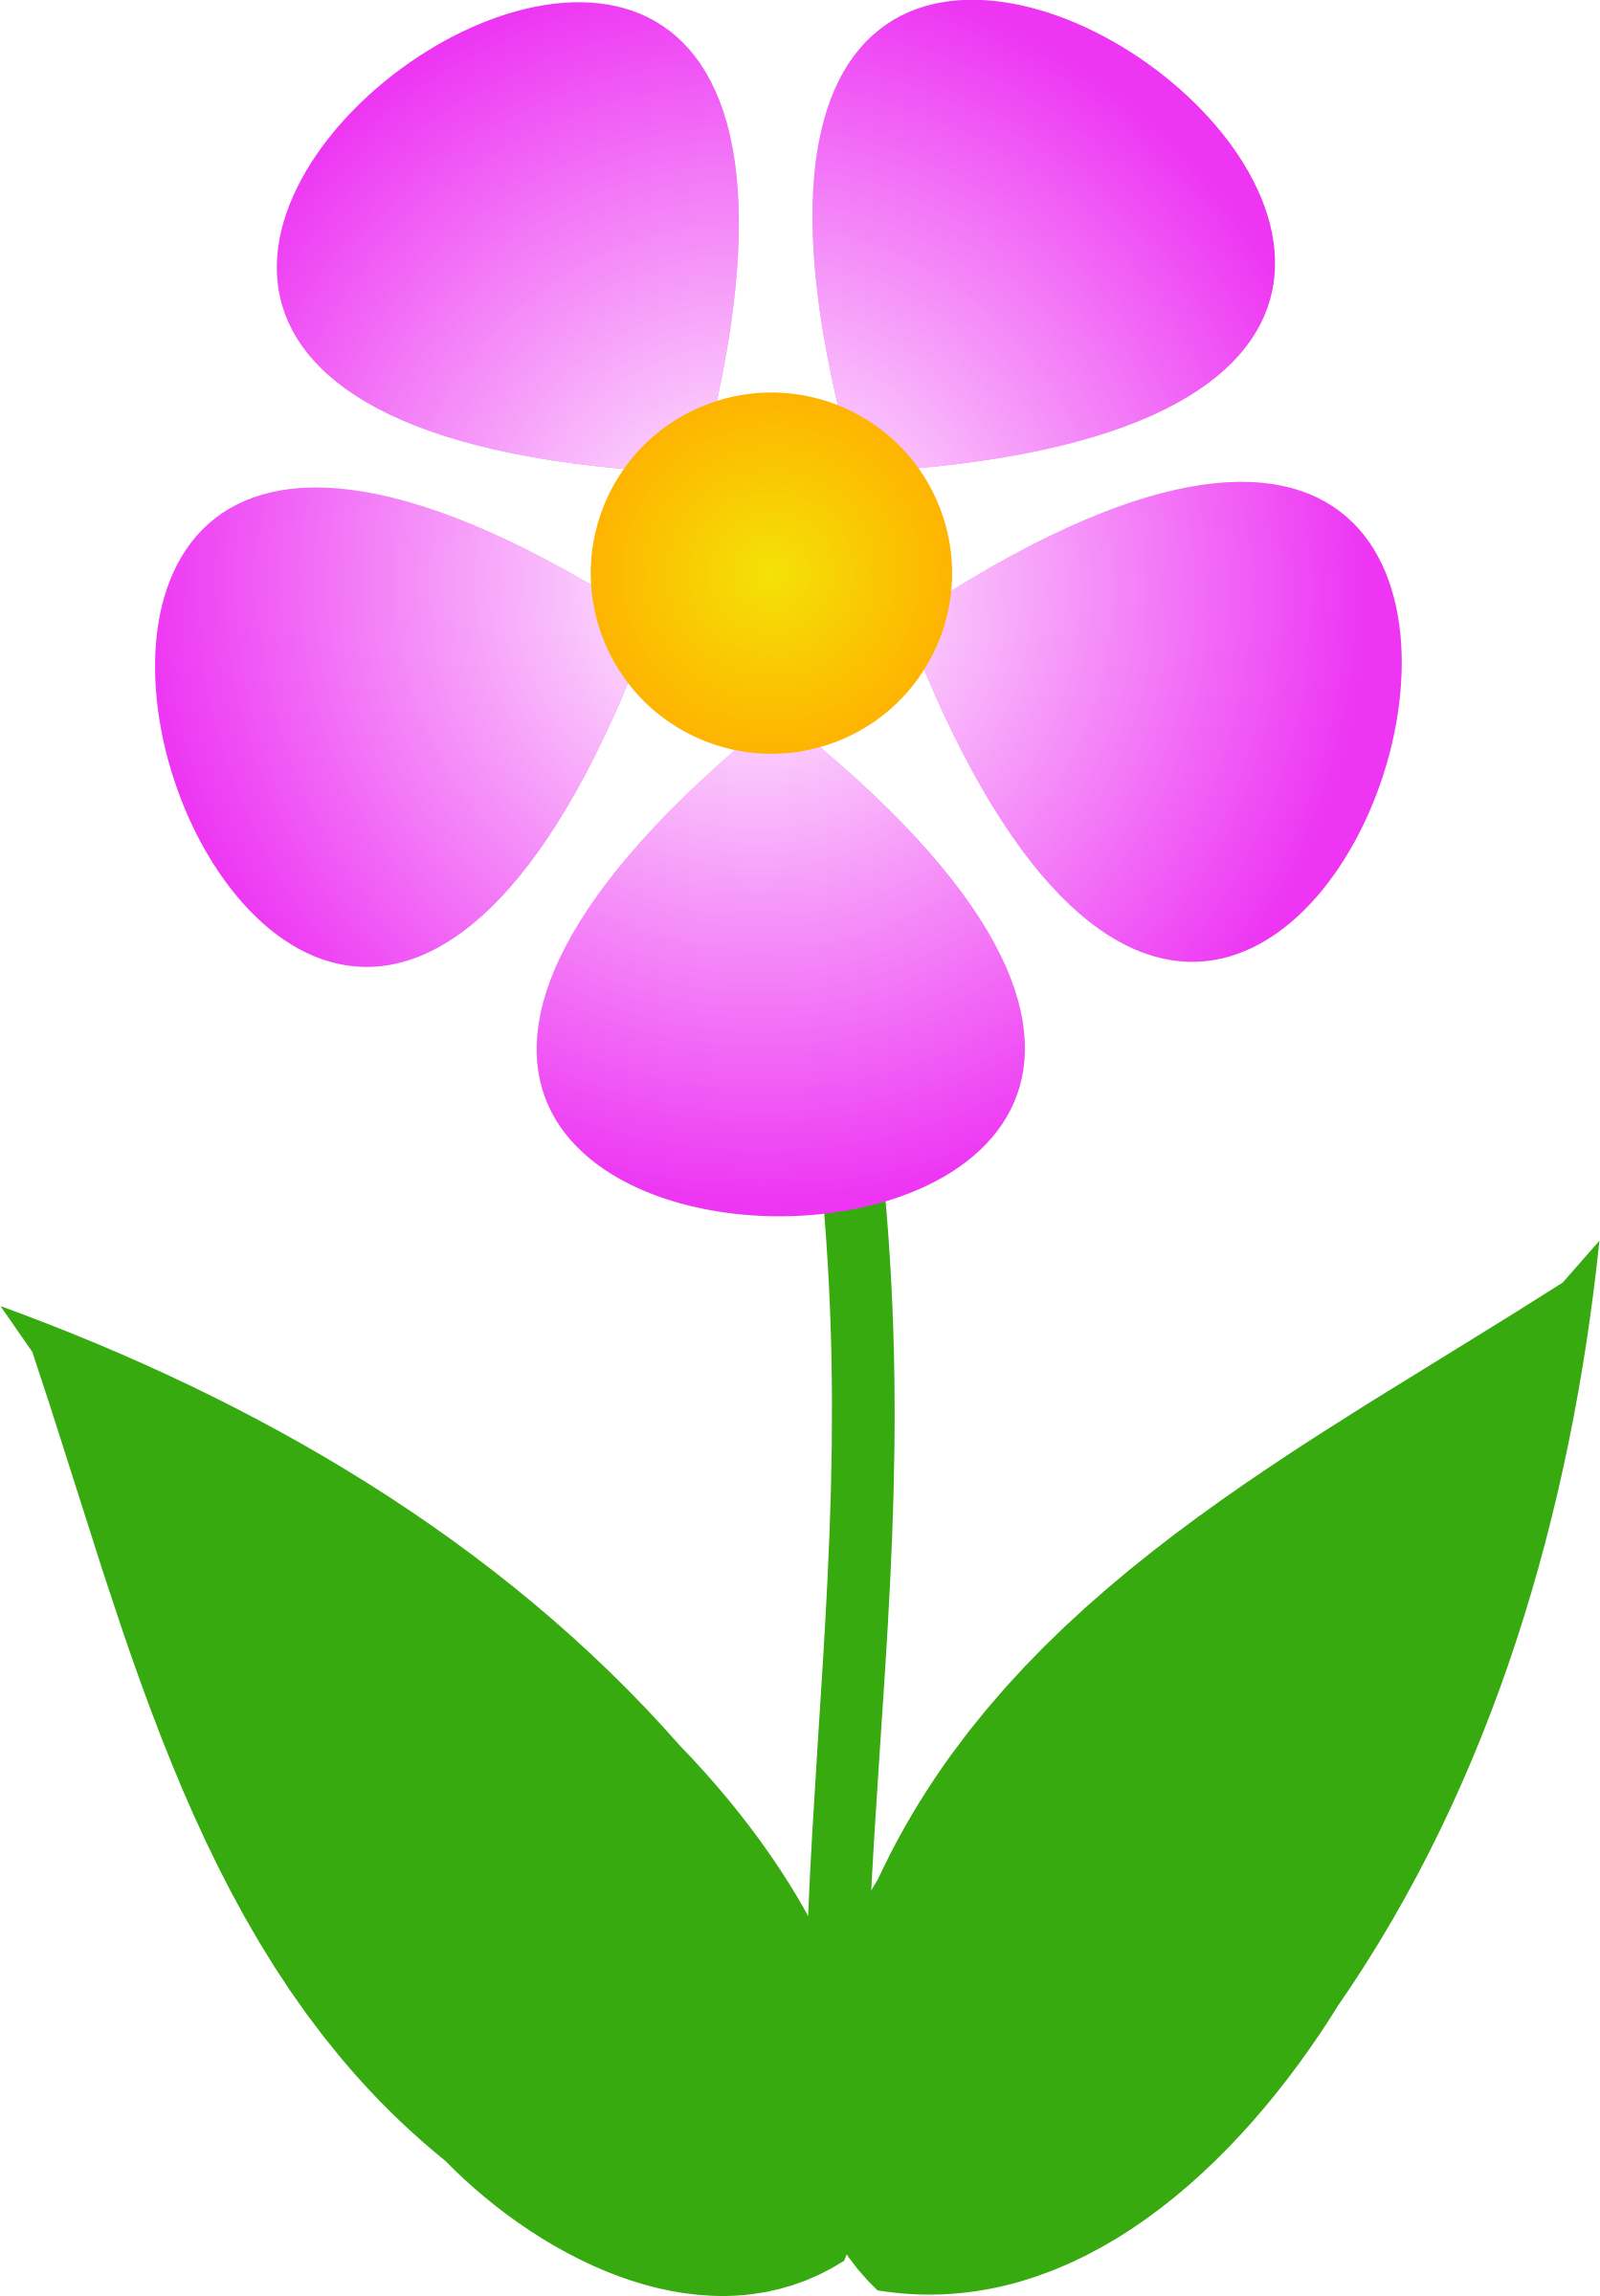 Flower images clipart vector free Big Flower Clipart at GetDrawings.com | Free for personal use Big ... vector free